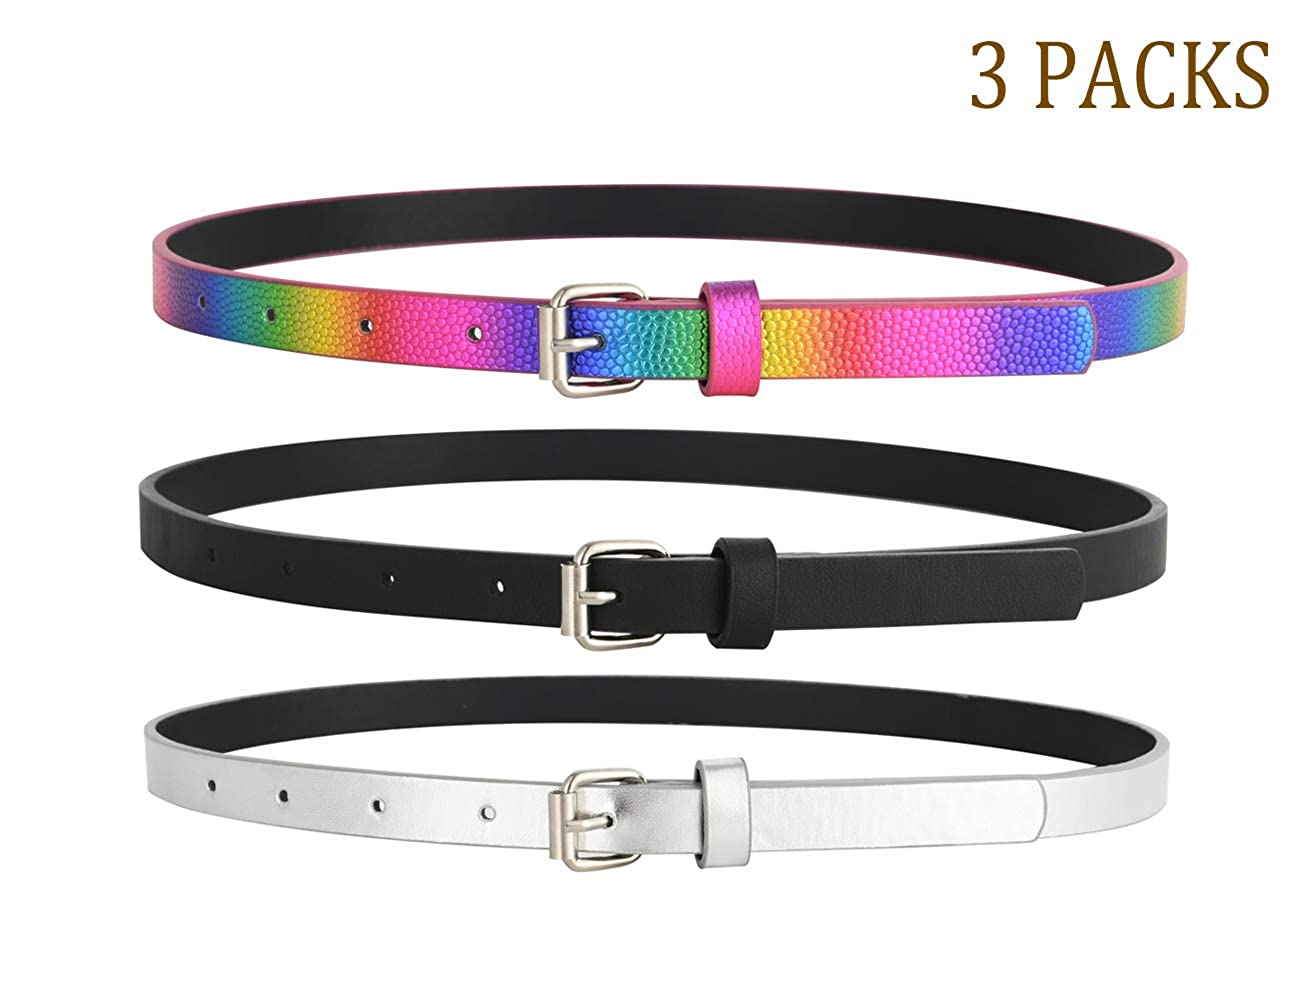 Belts for Girls 3 Pack Teen Kids Belt Girls Fashion PU Leather Patent Belt Fit Pant 21-30